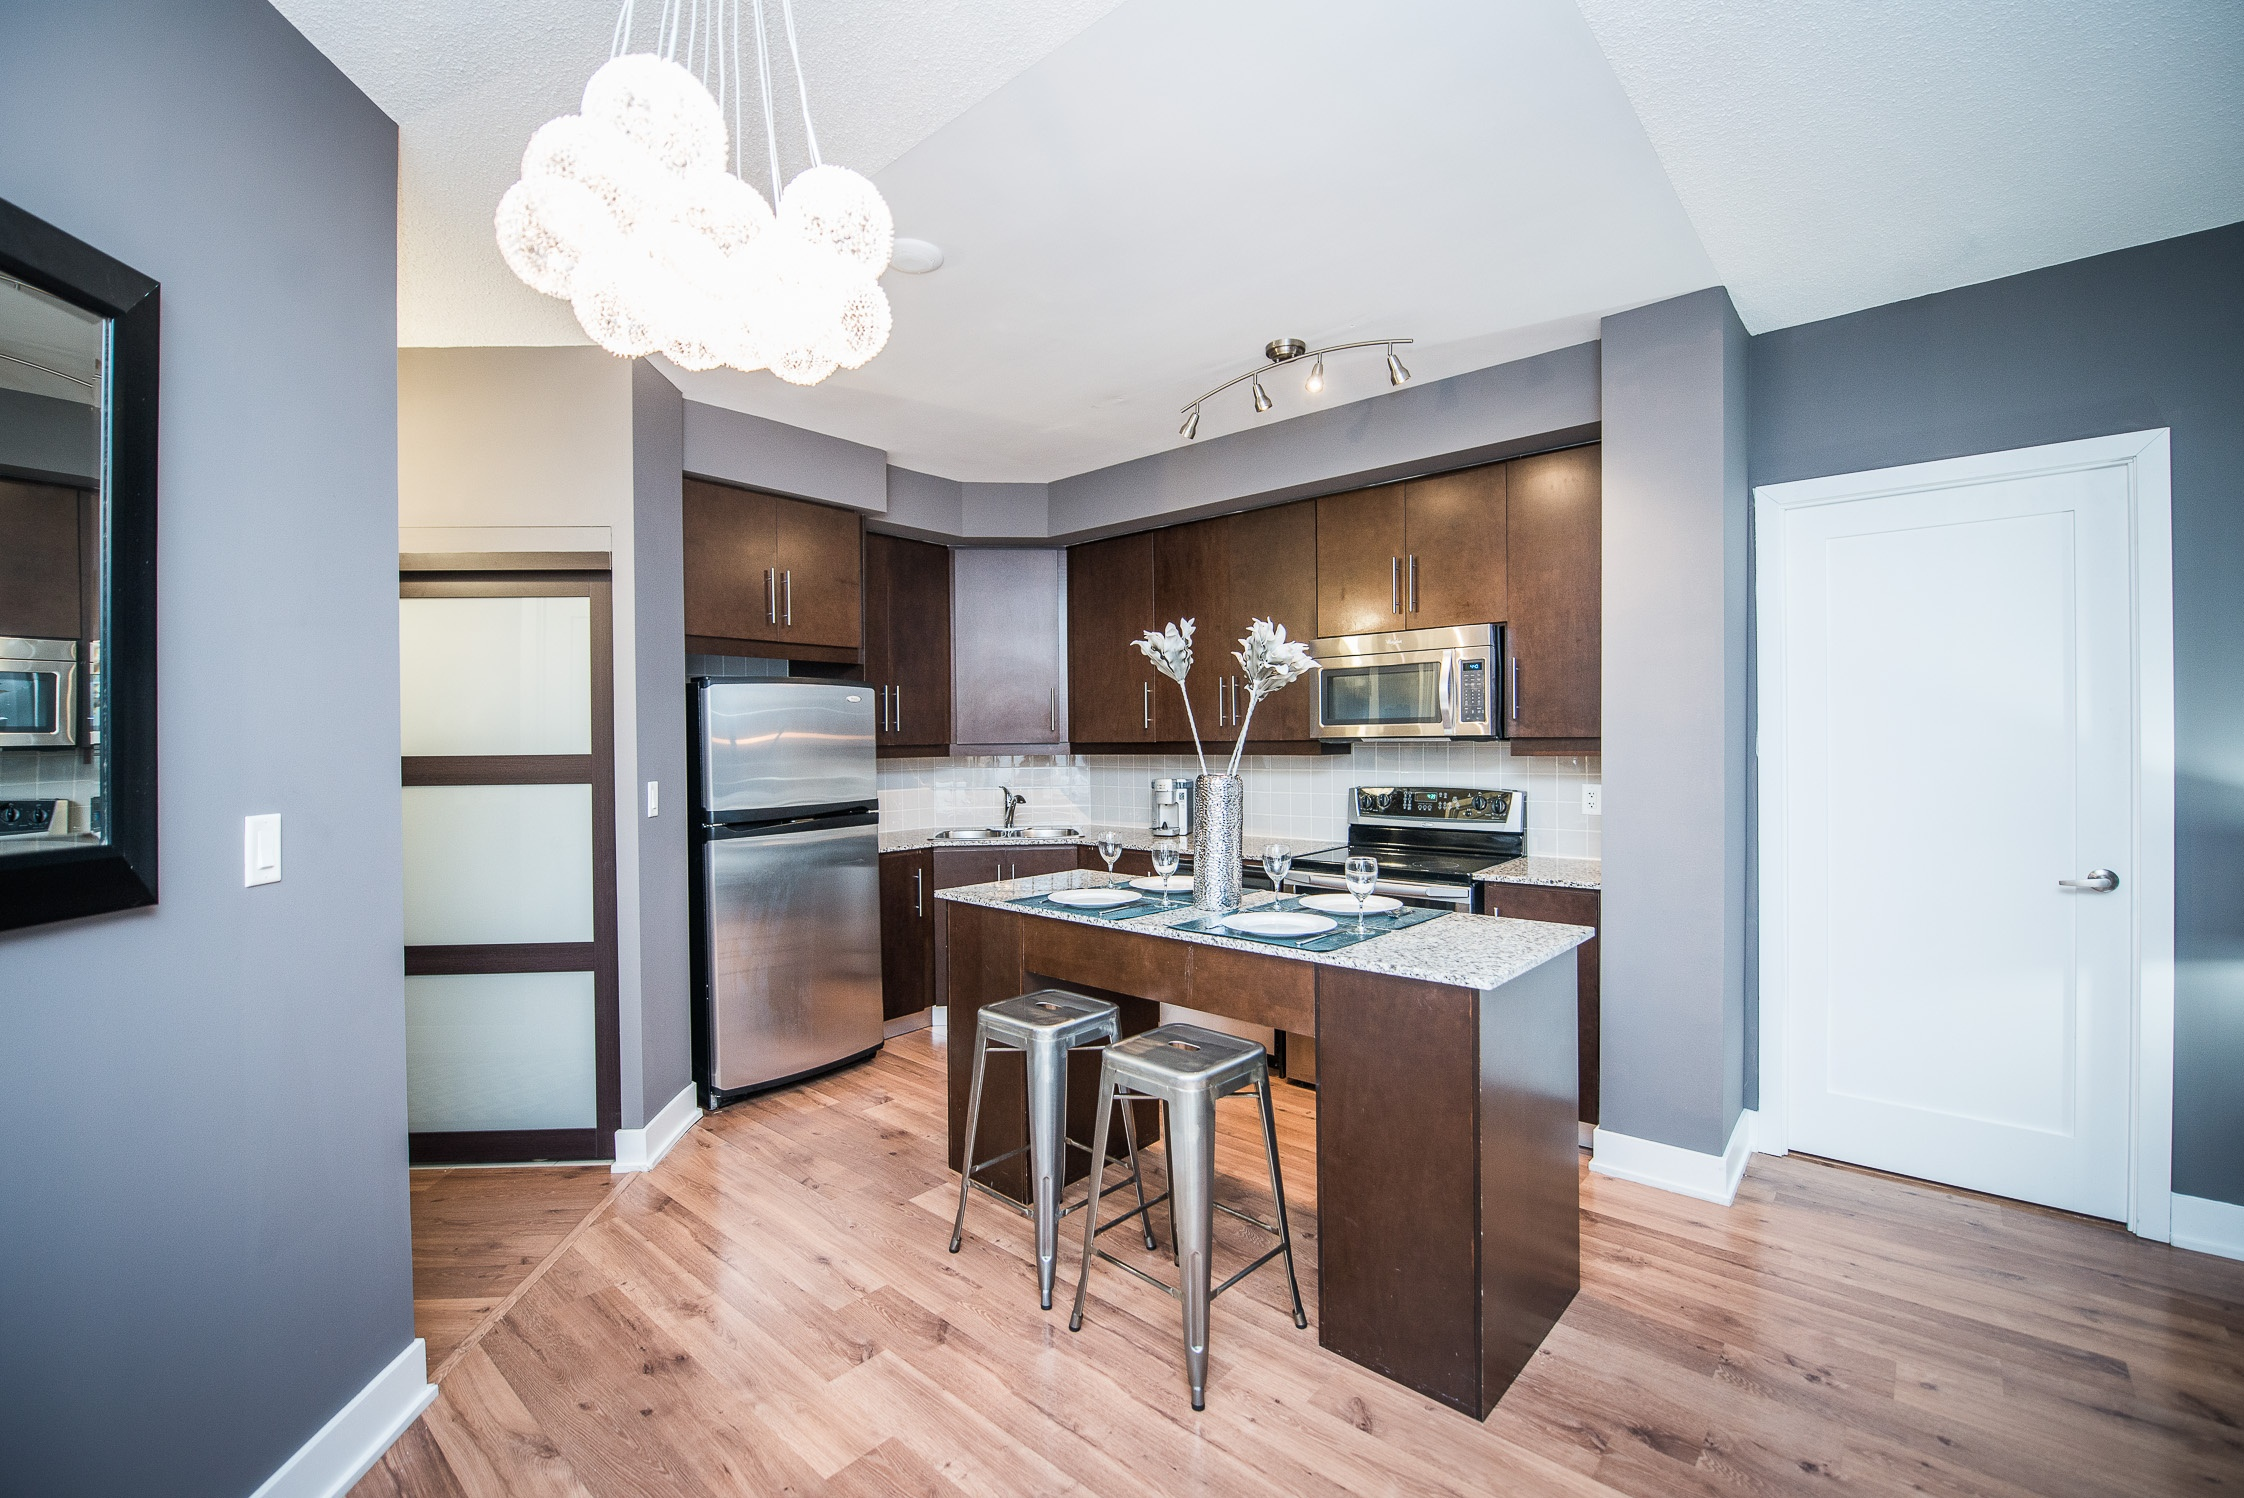 20 Blue Jays Way in Toronto, ON is Now Available